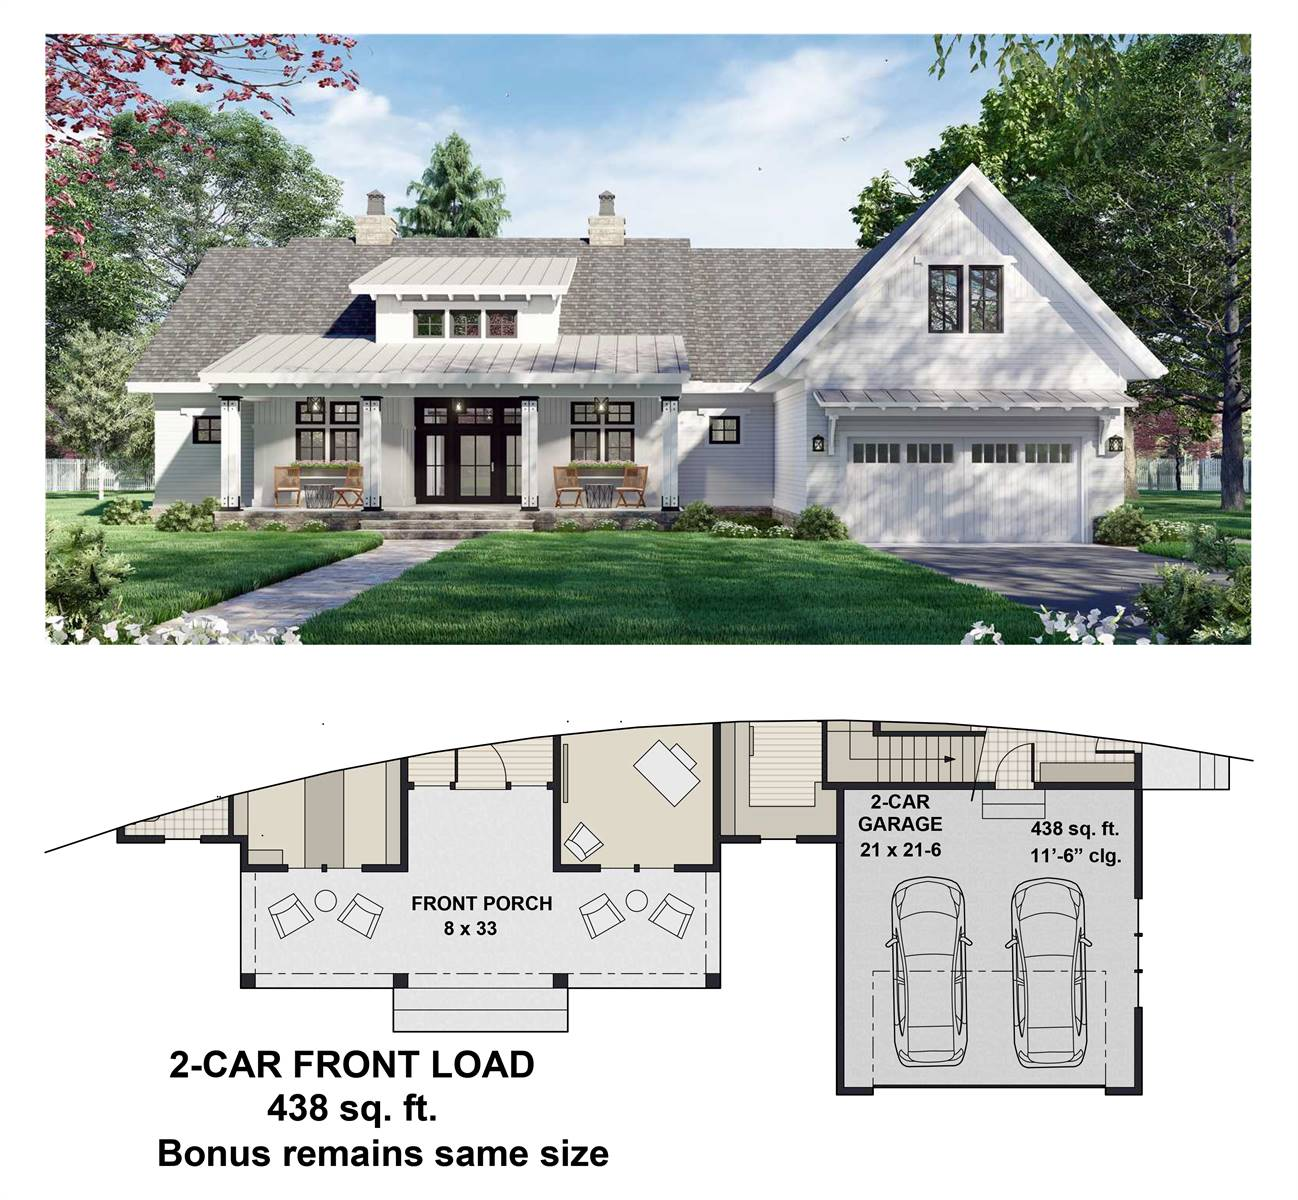 2-Car Front Entry Option